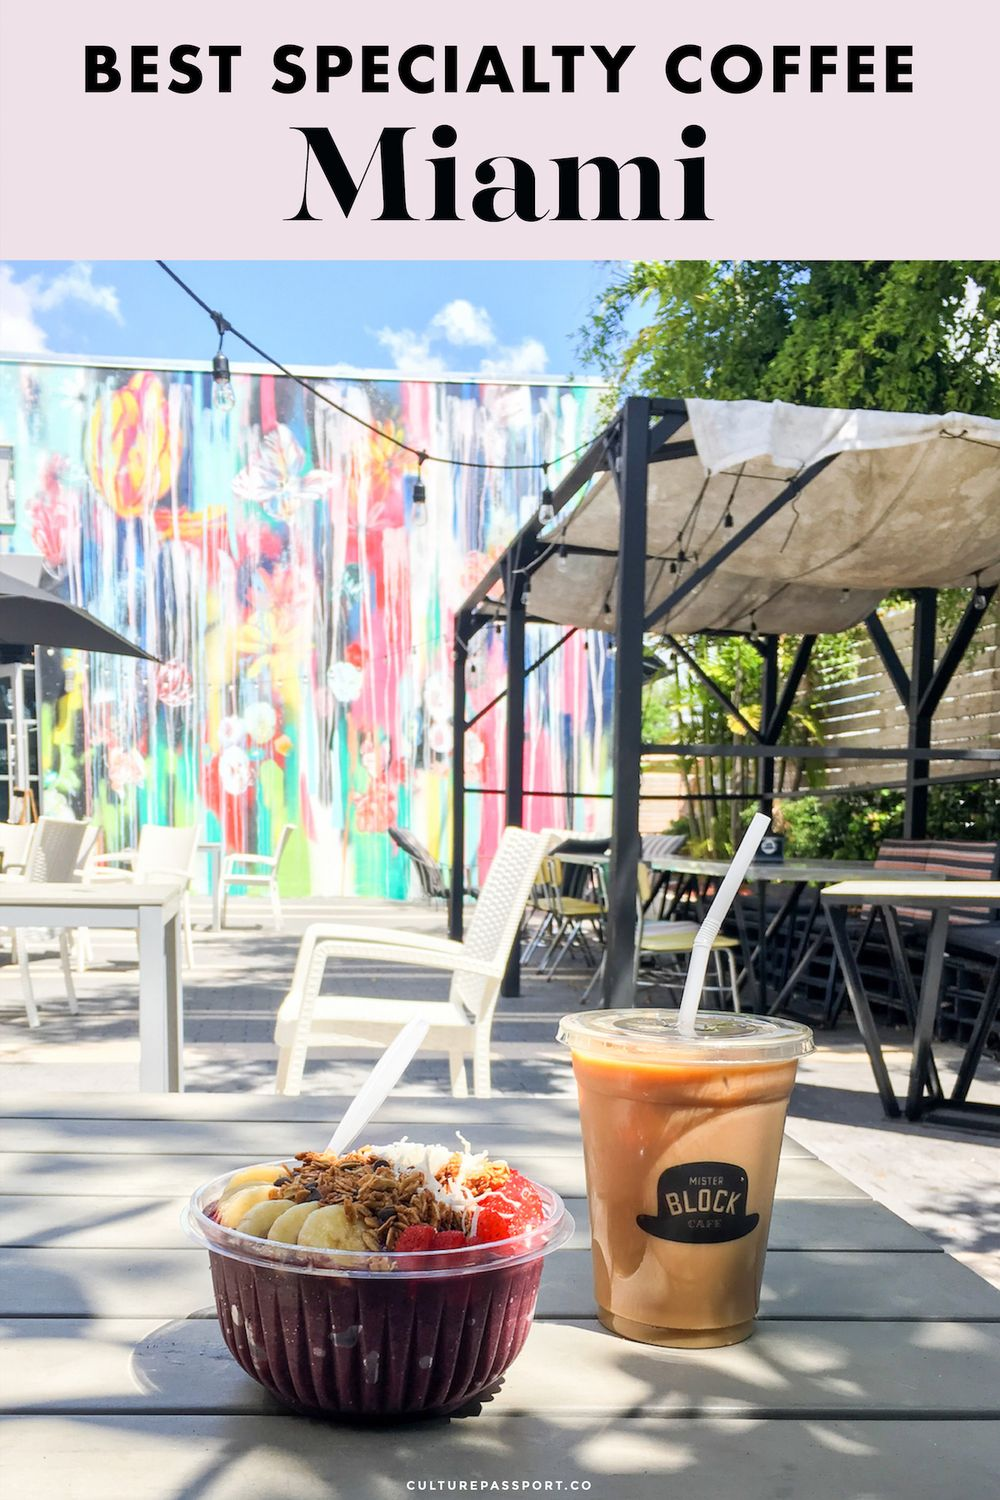 12 Best Coffee Shops In Miami To Get Your Caffeine Fix! Where to Find Artisanal coffee in Miami, Third wave coffee in Miami #specialtycoffee